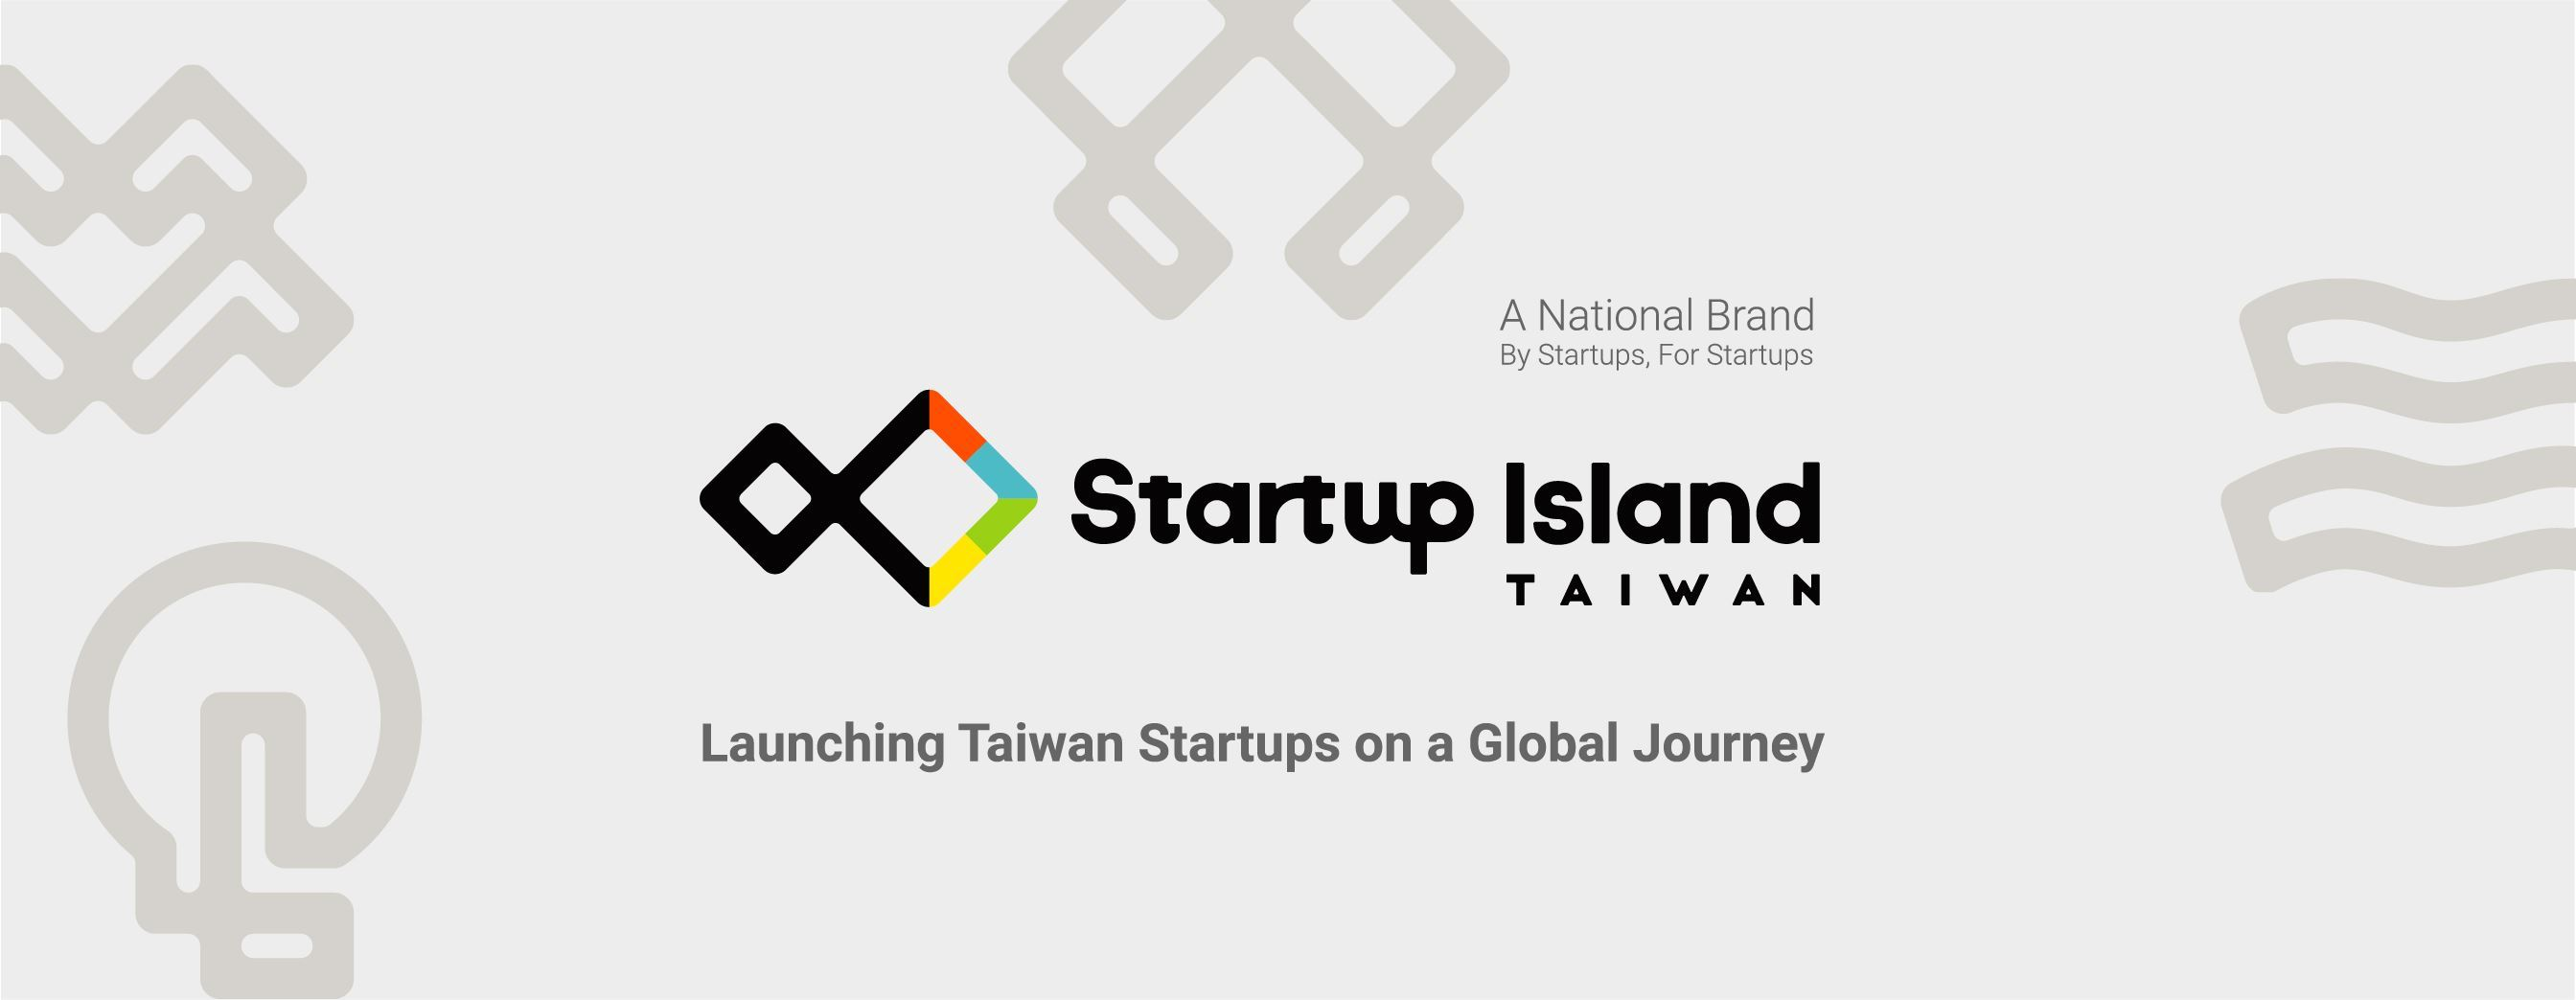 It is imperative for Taiwan to constantly upgrade its startup ecosystem if it is to thrive in the digital economy era and transform successfully into an innovation-driven economy.